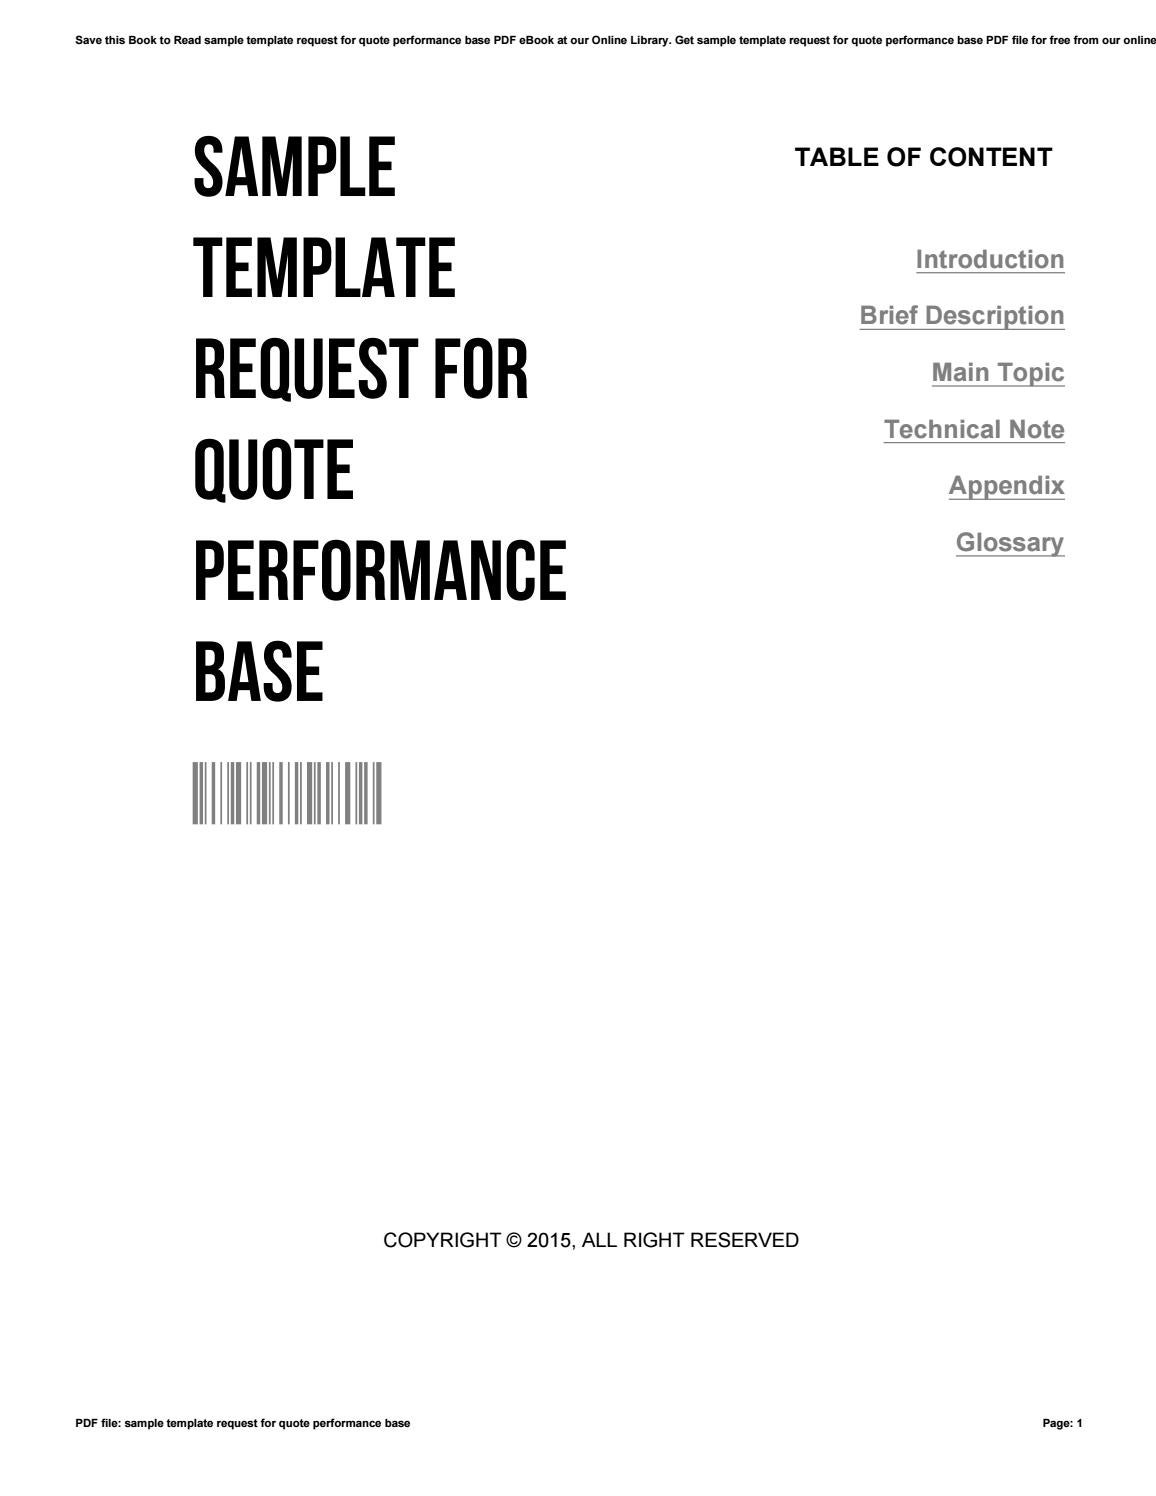 Sample template request for quote performance base by